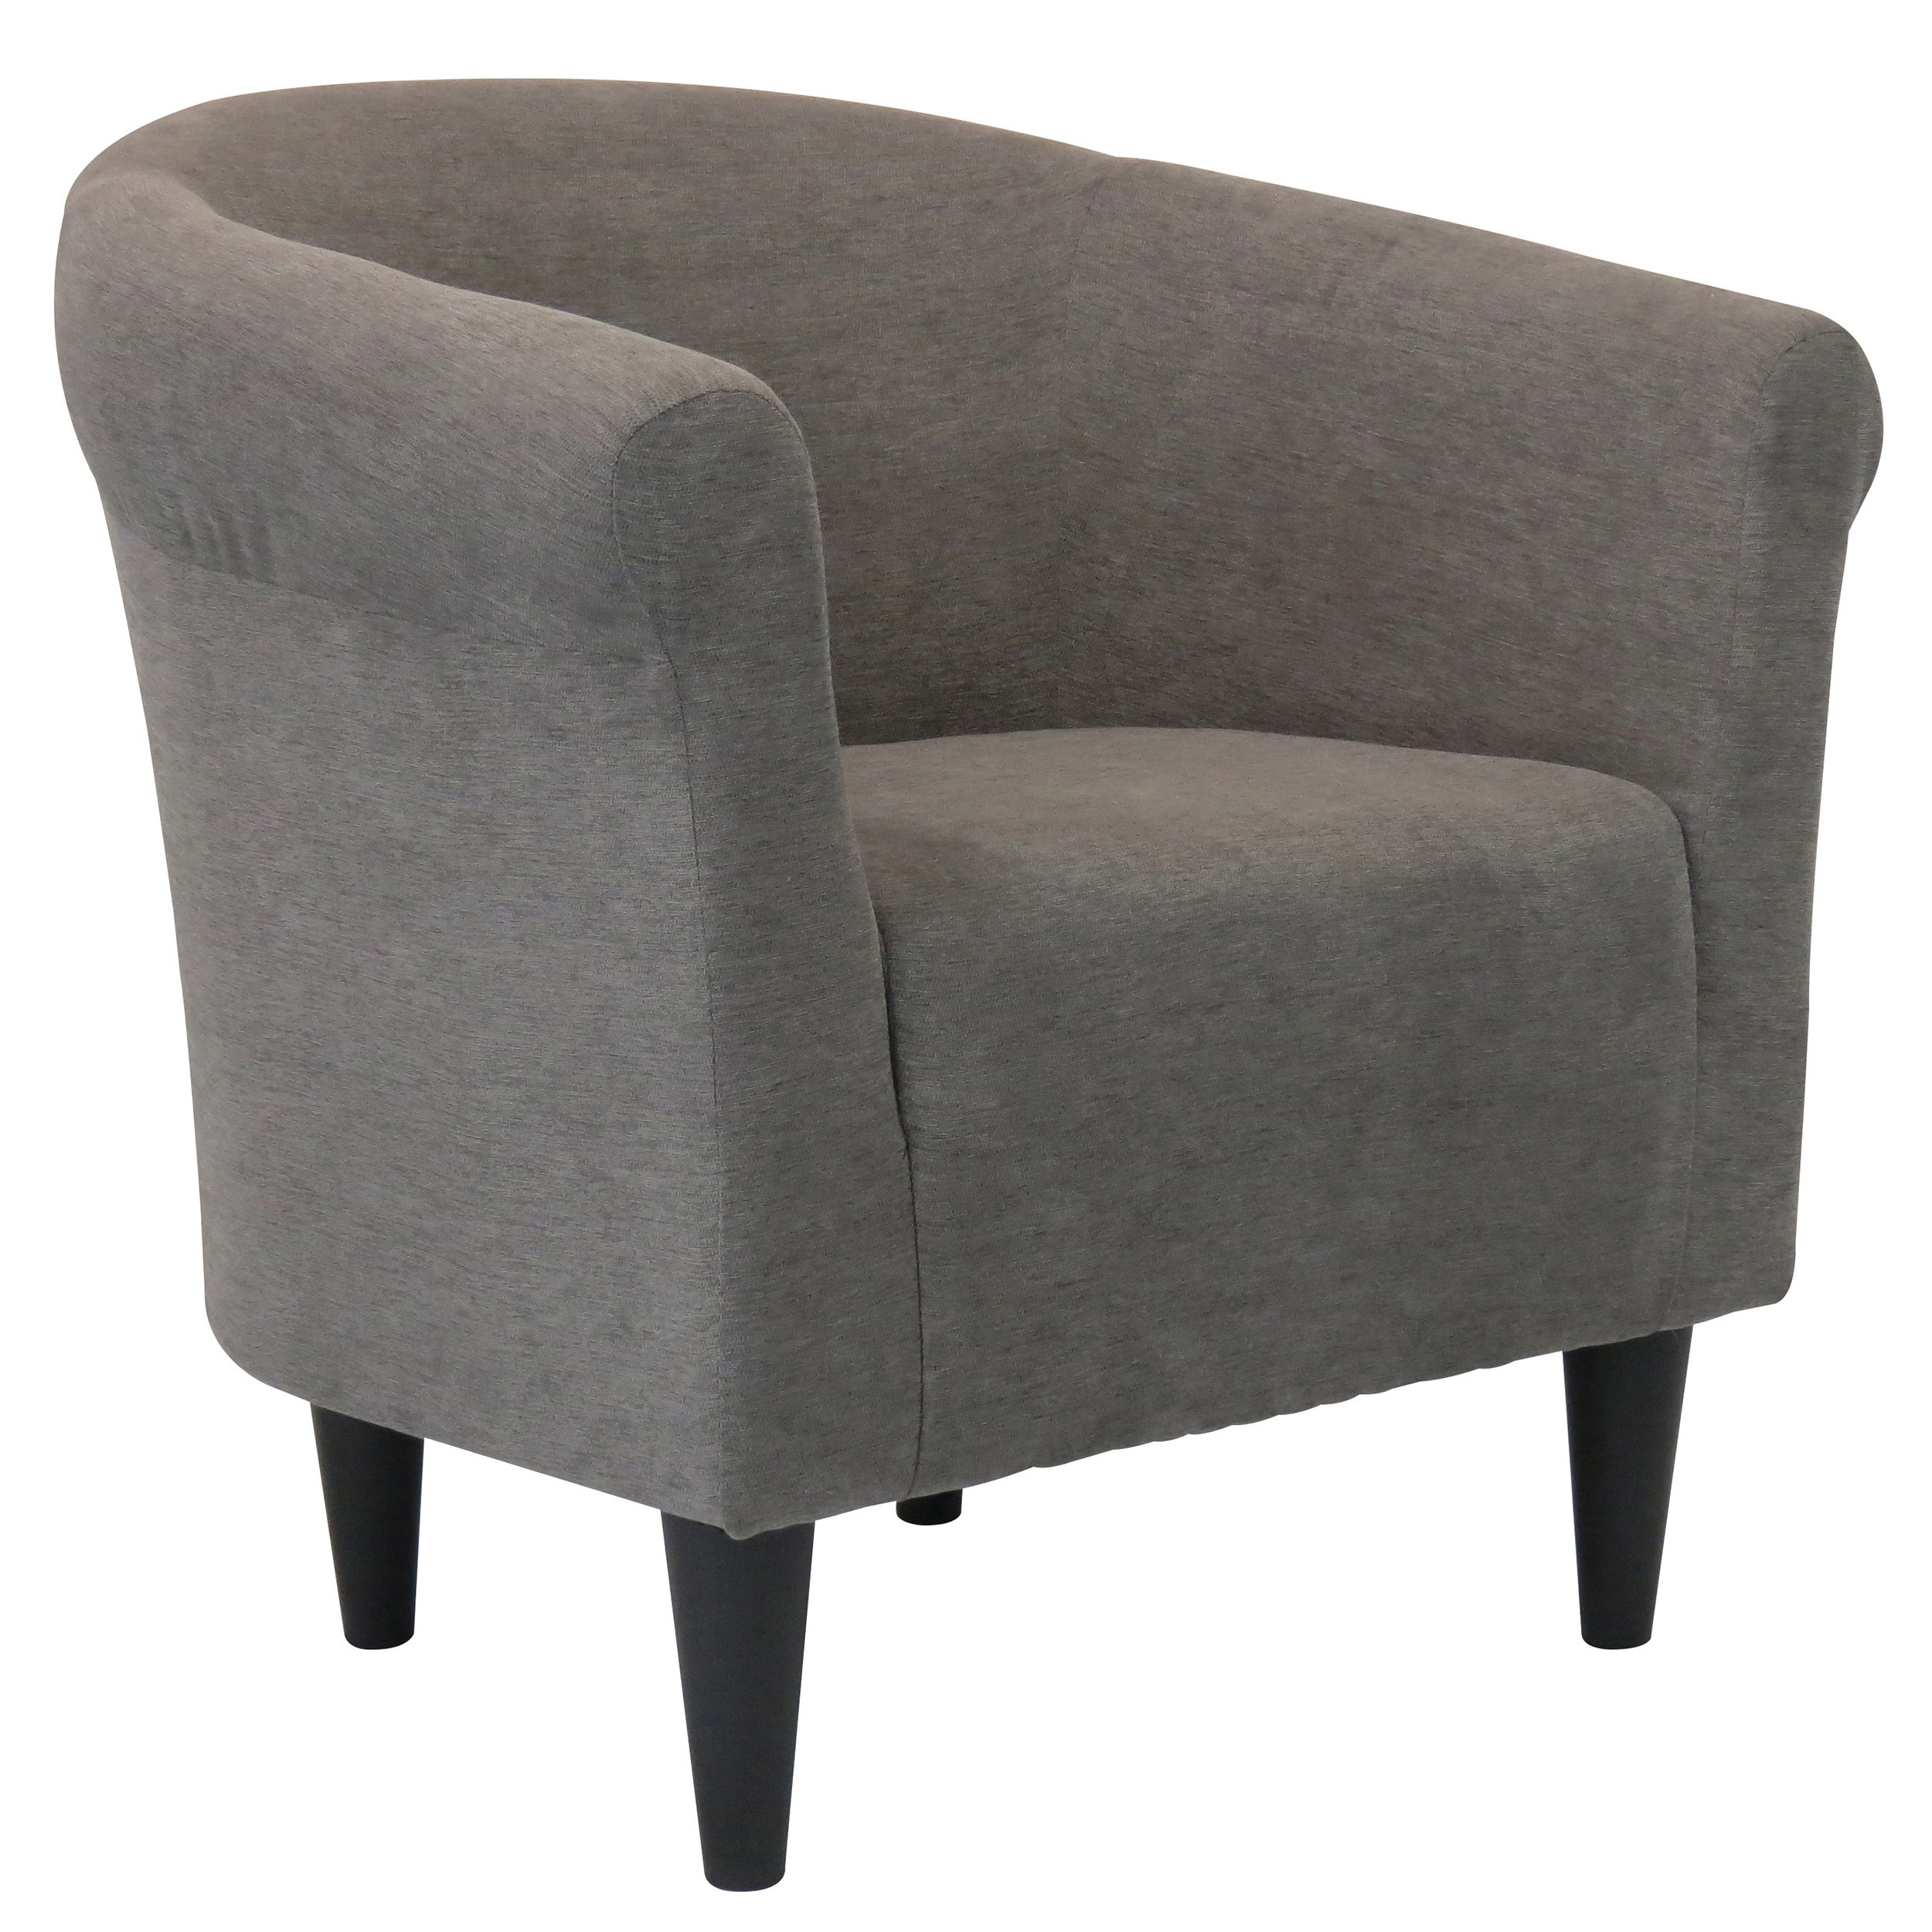 Shop porch den walker round back upholstered accent chair free shipping today overstock com 20340250